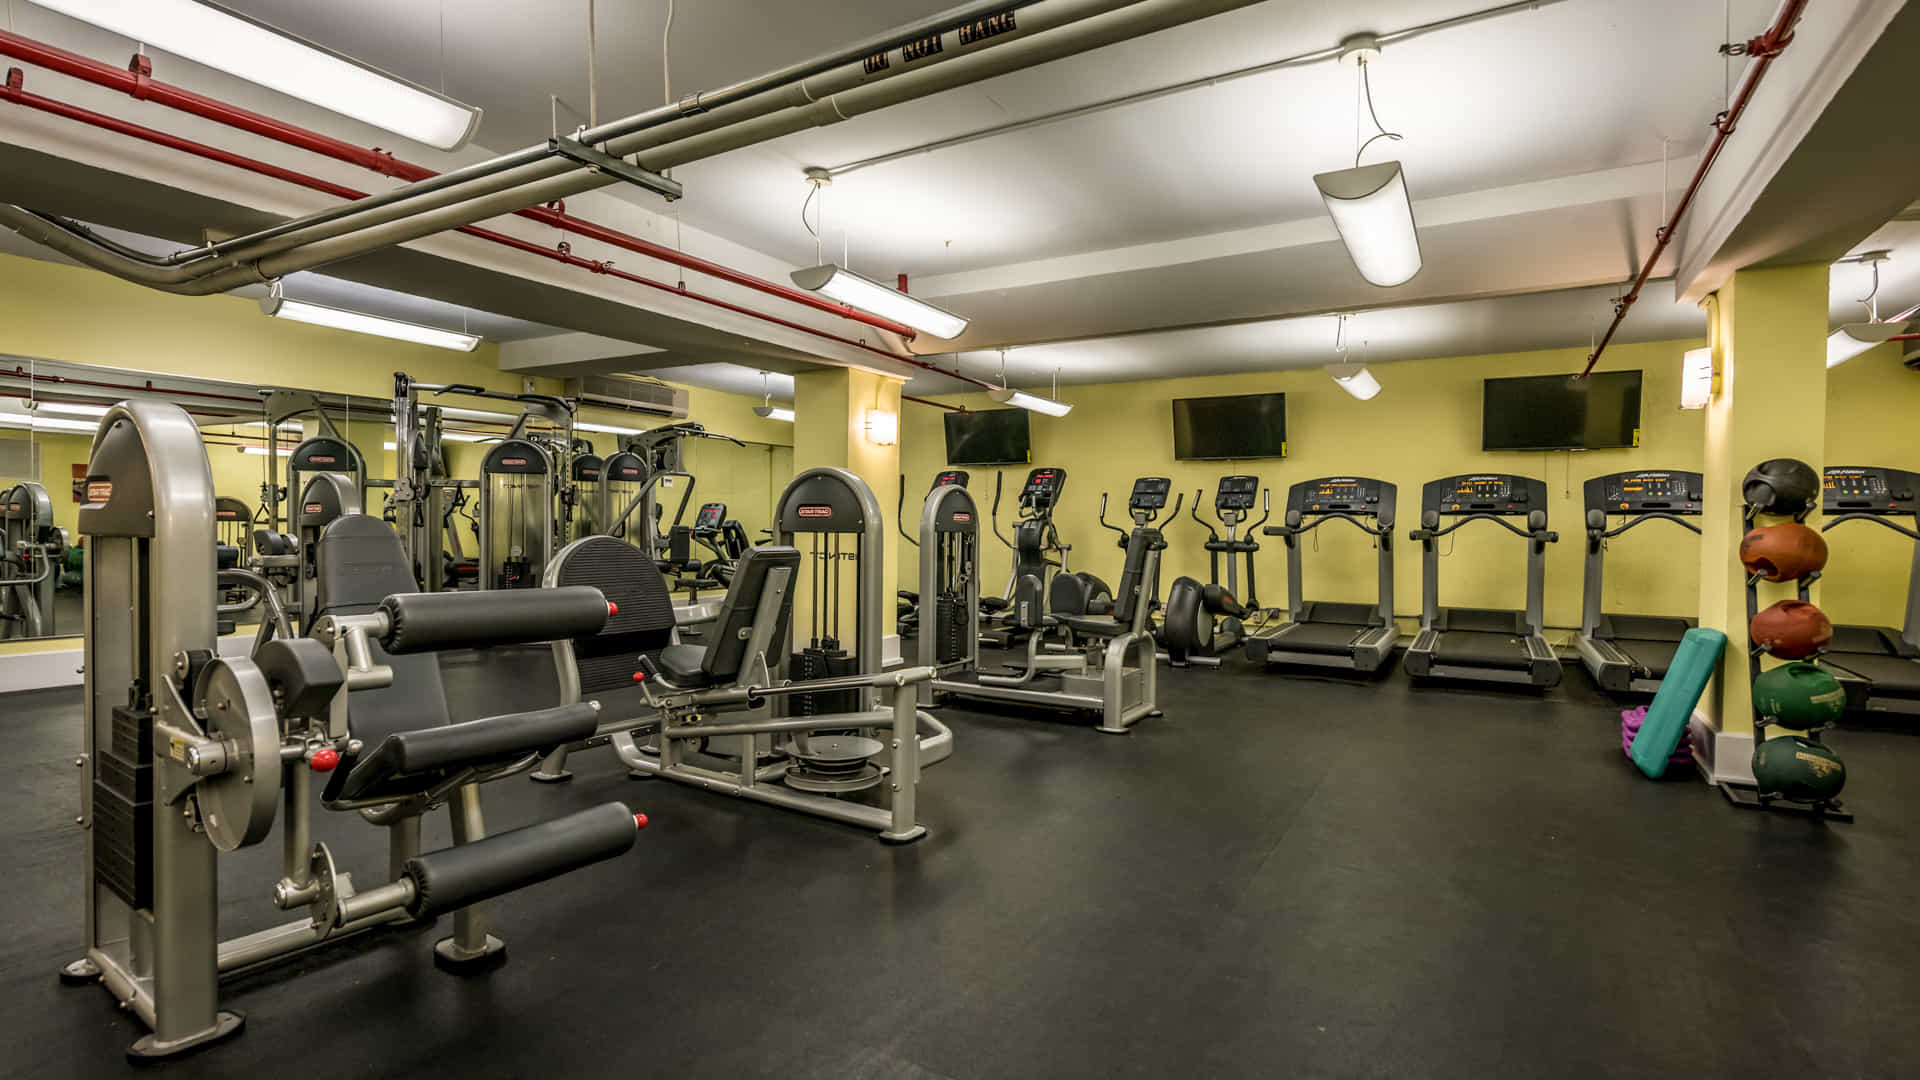 Parc east apartments fitness center